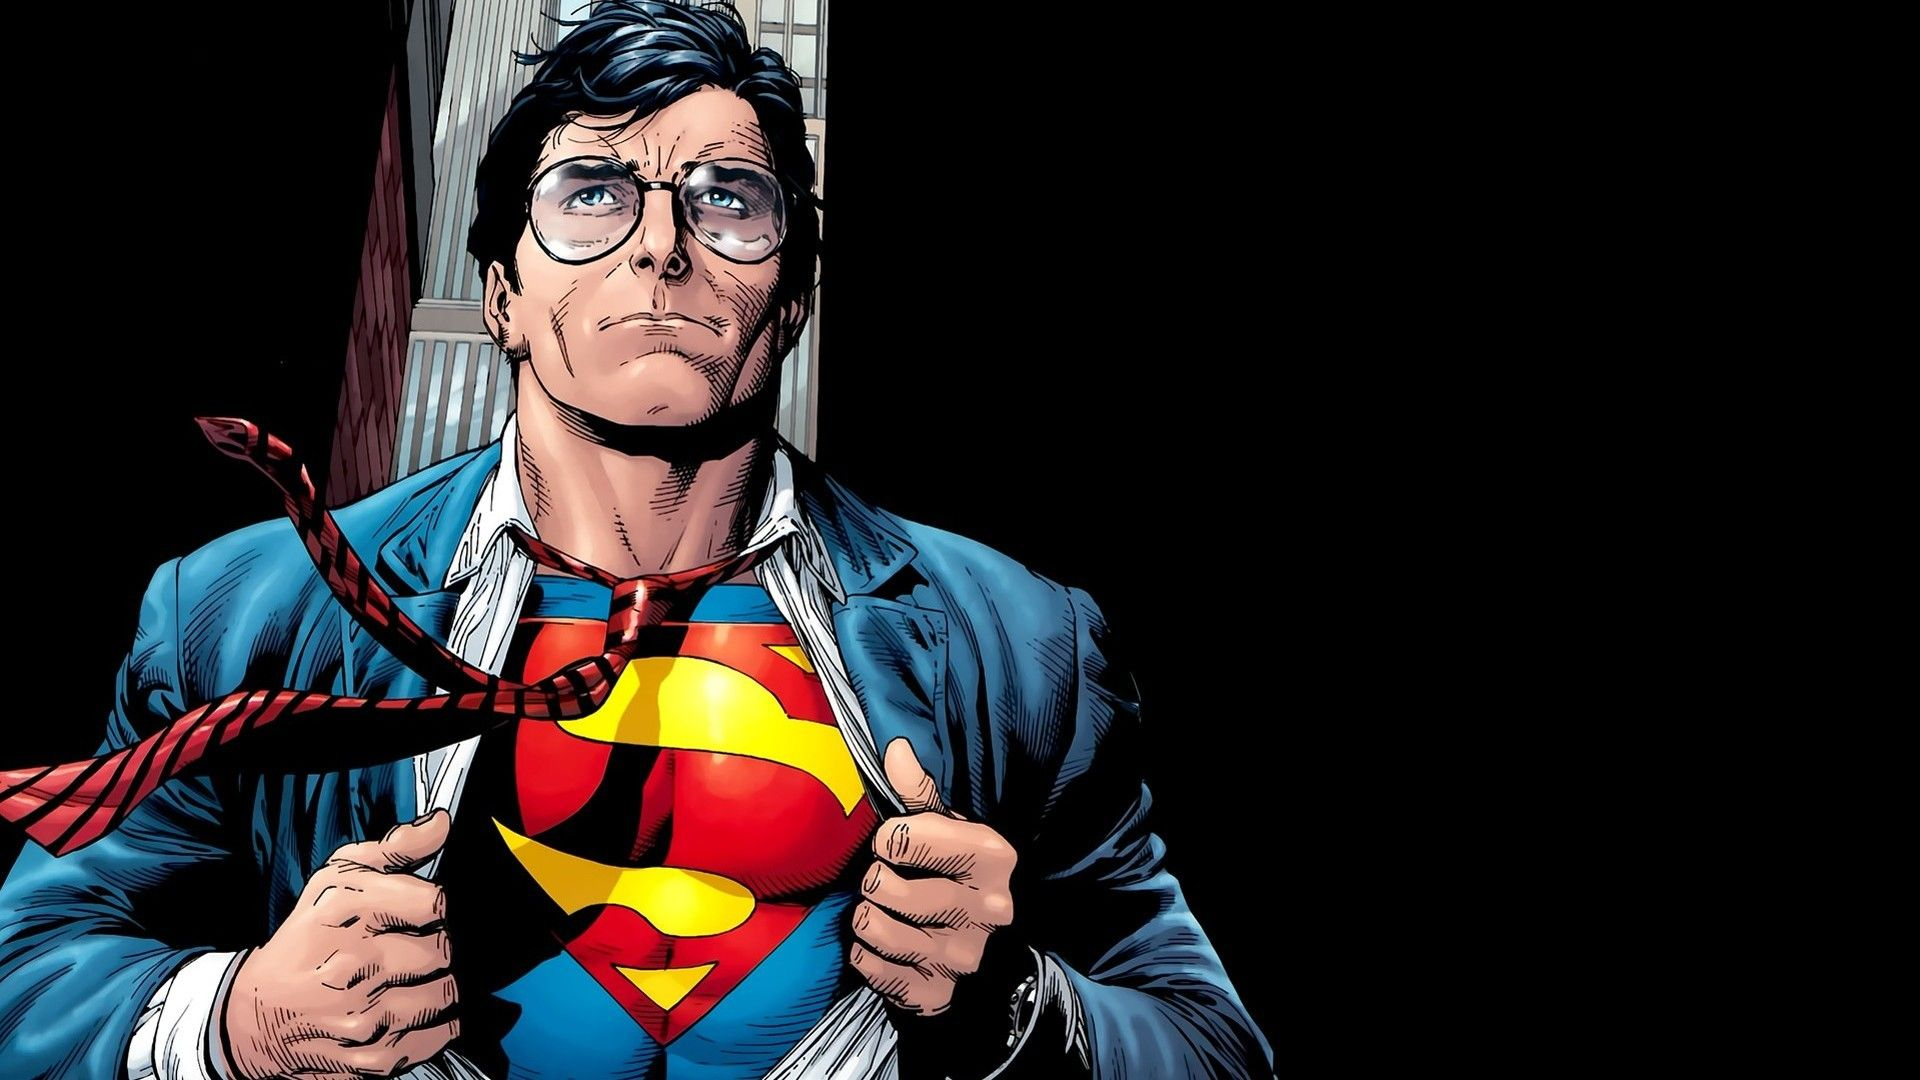 1920x1080 Hd Superman Dc Comic 1080p Wallpaper Full Size